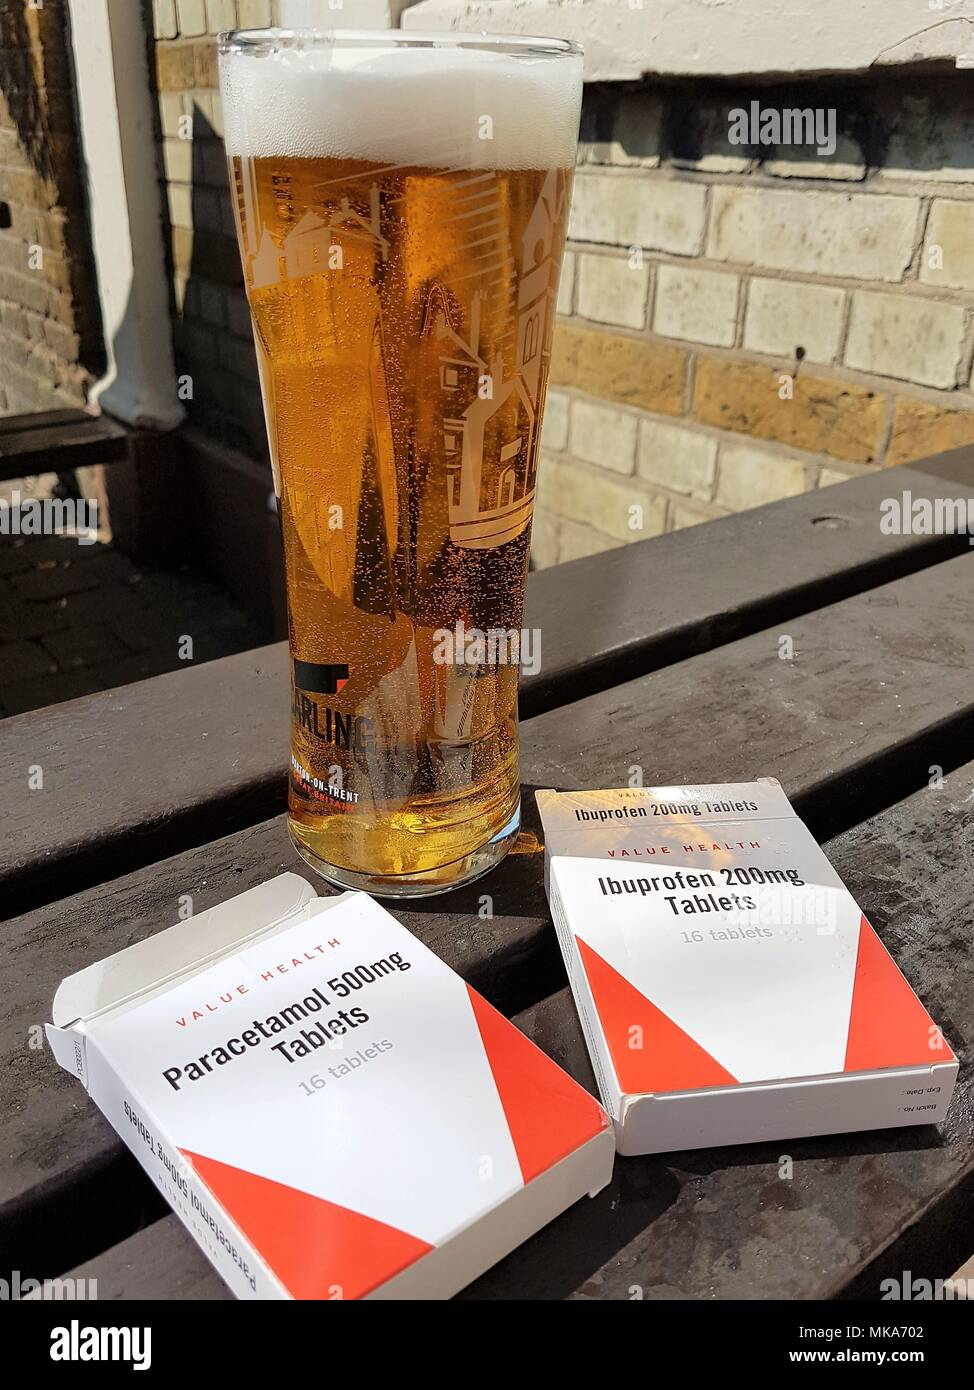 A pint of Carling lager and empty packets of Paracetamol and Ibuprofen on a wooden bench in a pub garden, hangover cure?. Stock Photo